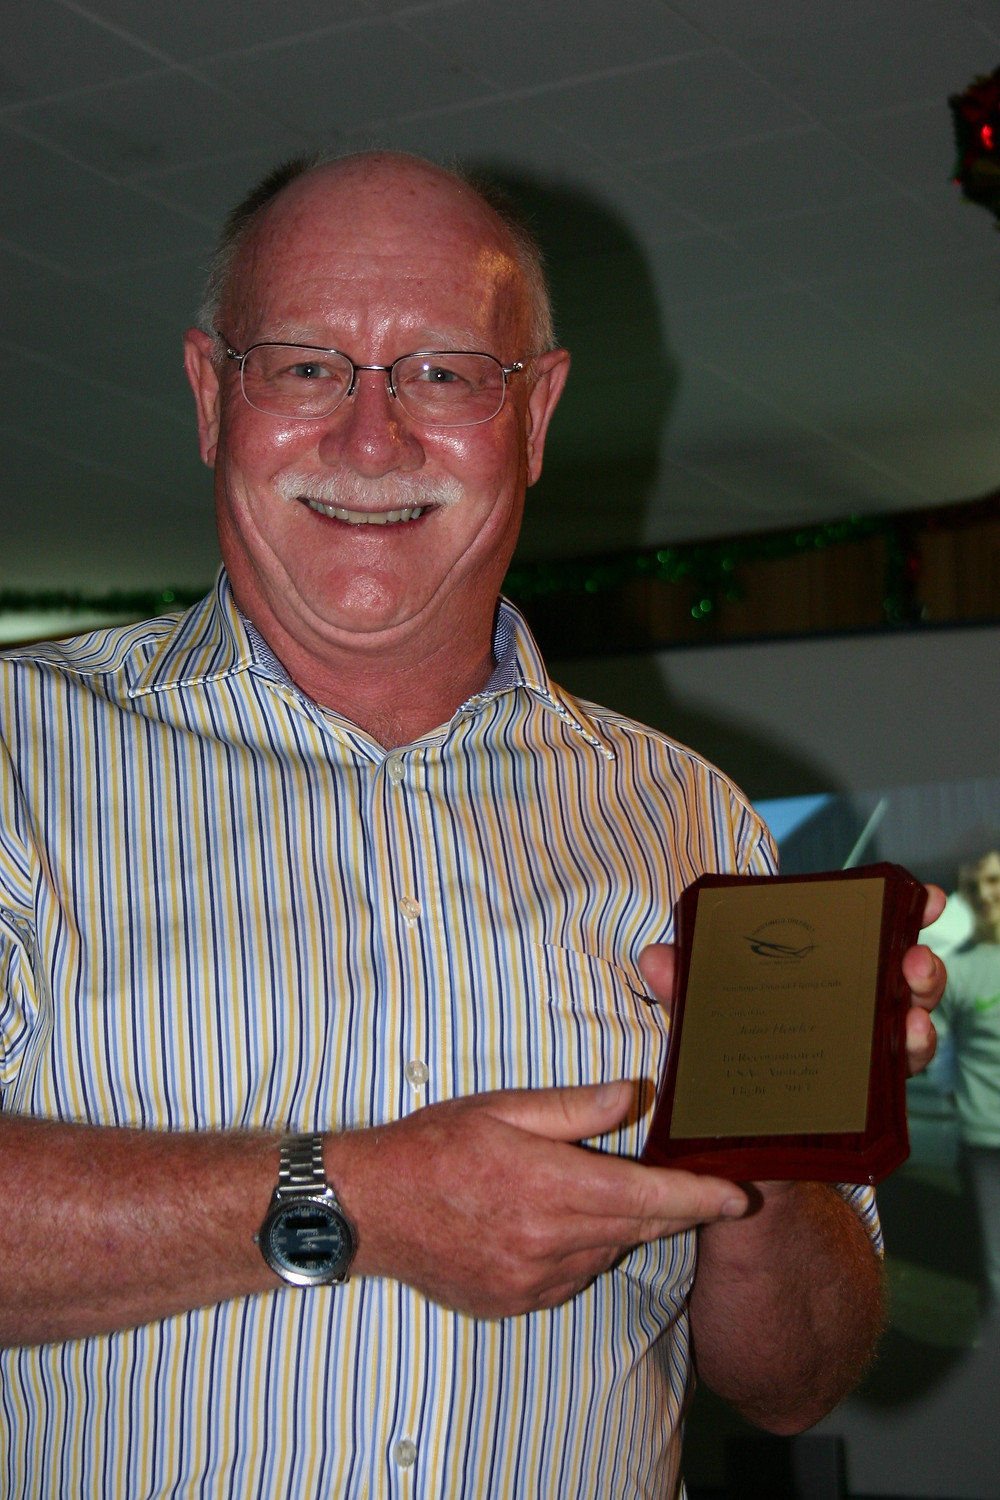 John Hayler Pilot of the Year 2013 | Hastings District Flying Club, Port Macquarie Recreational Aviation | HDFC Port Macquarie